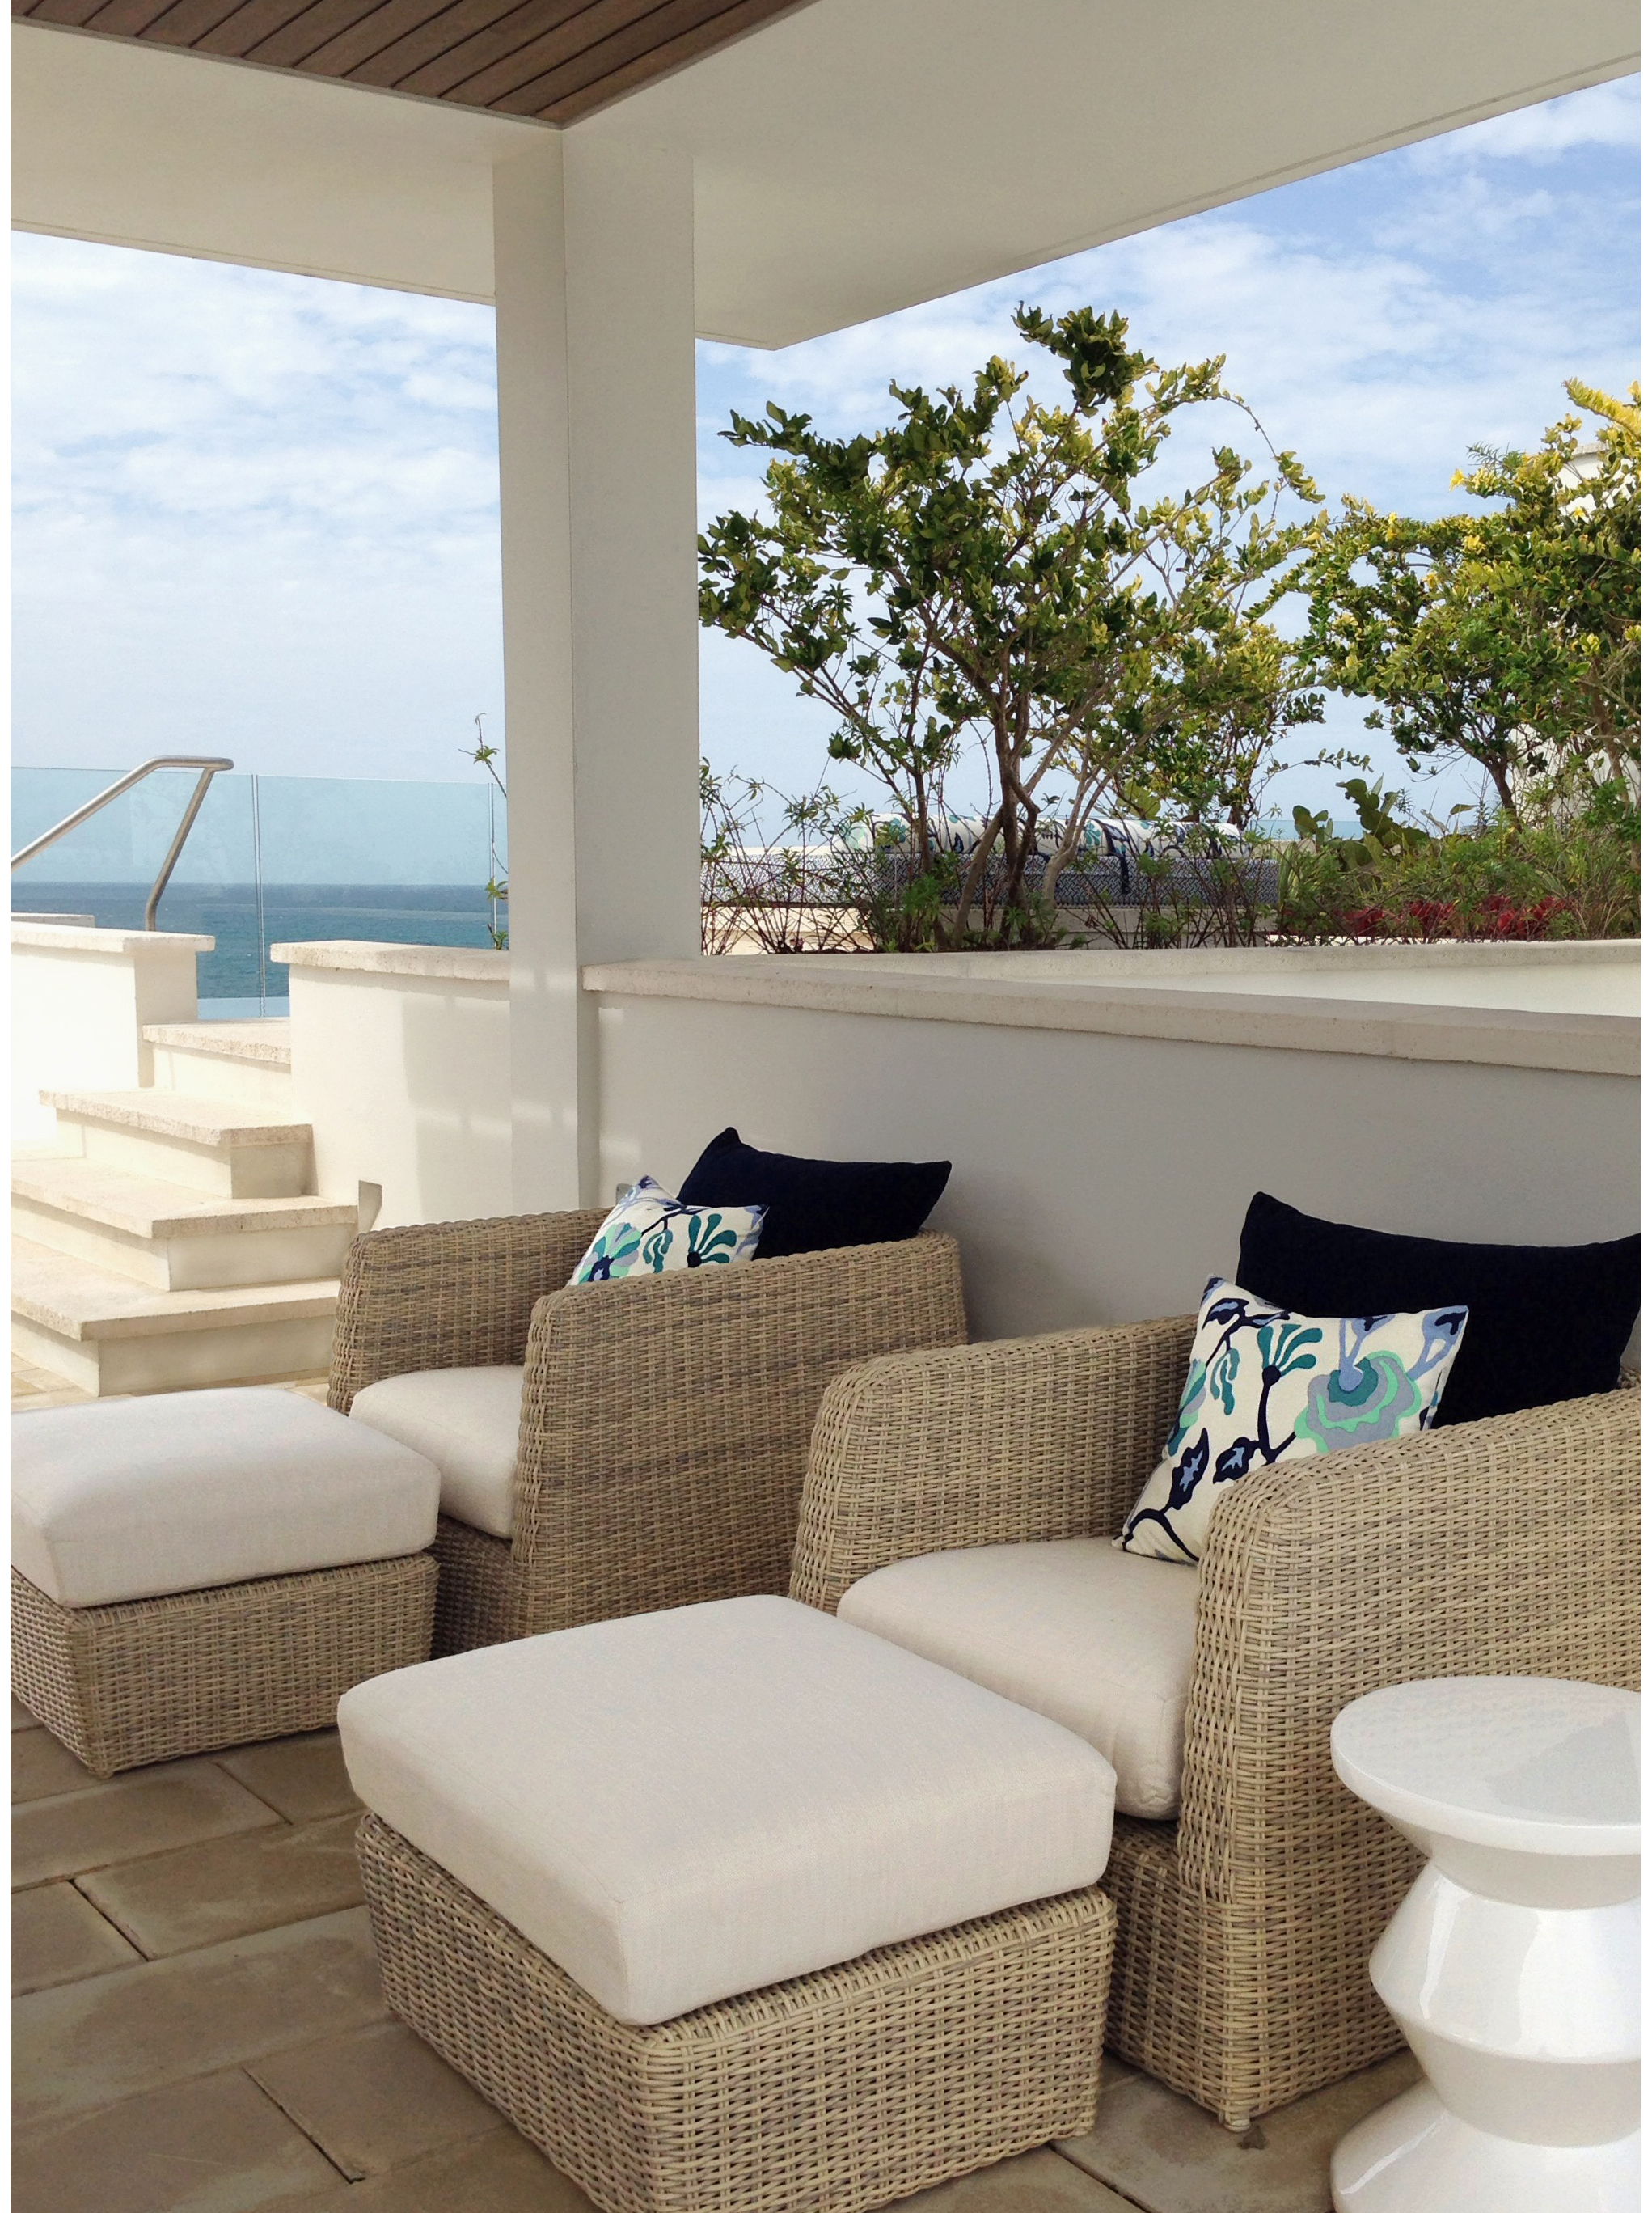 Jacqueline Pagan Interior Design|West Beach Residences at Dorado Beach a Ritz Carlton Reserve Rooftop Terrace